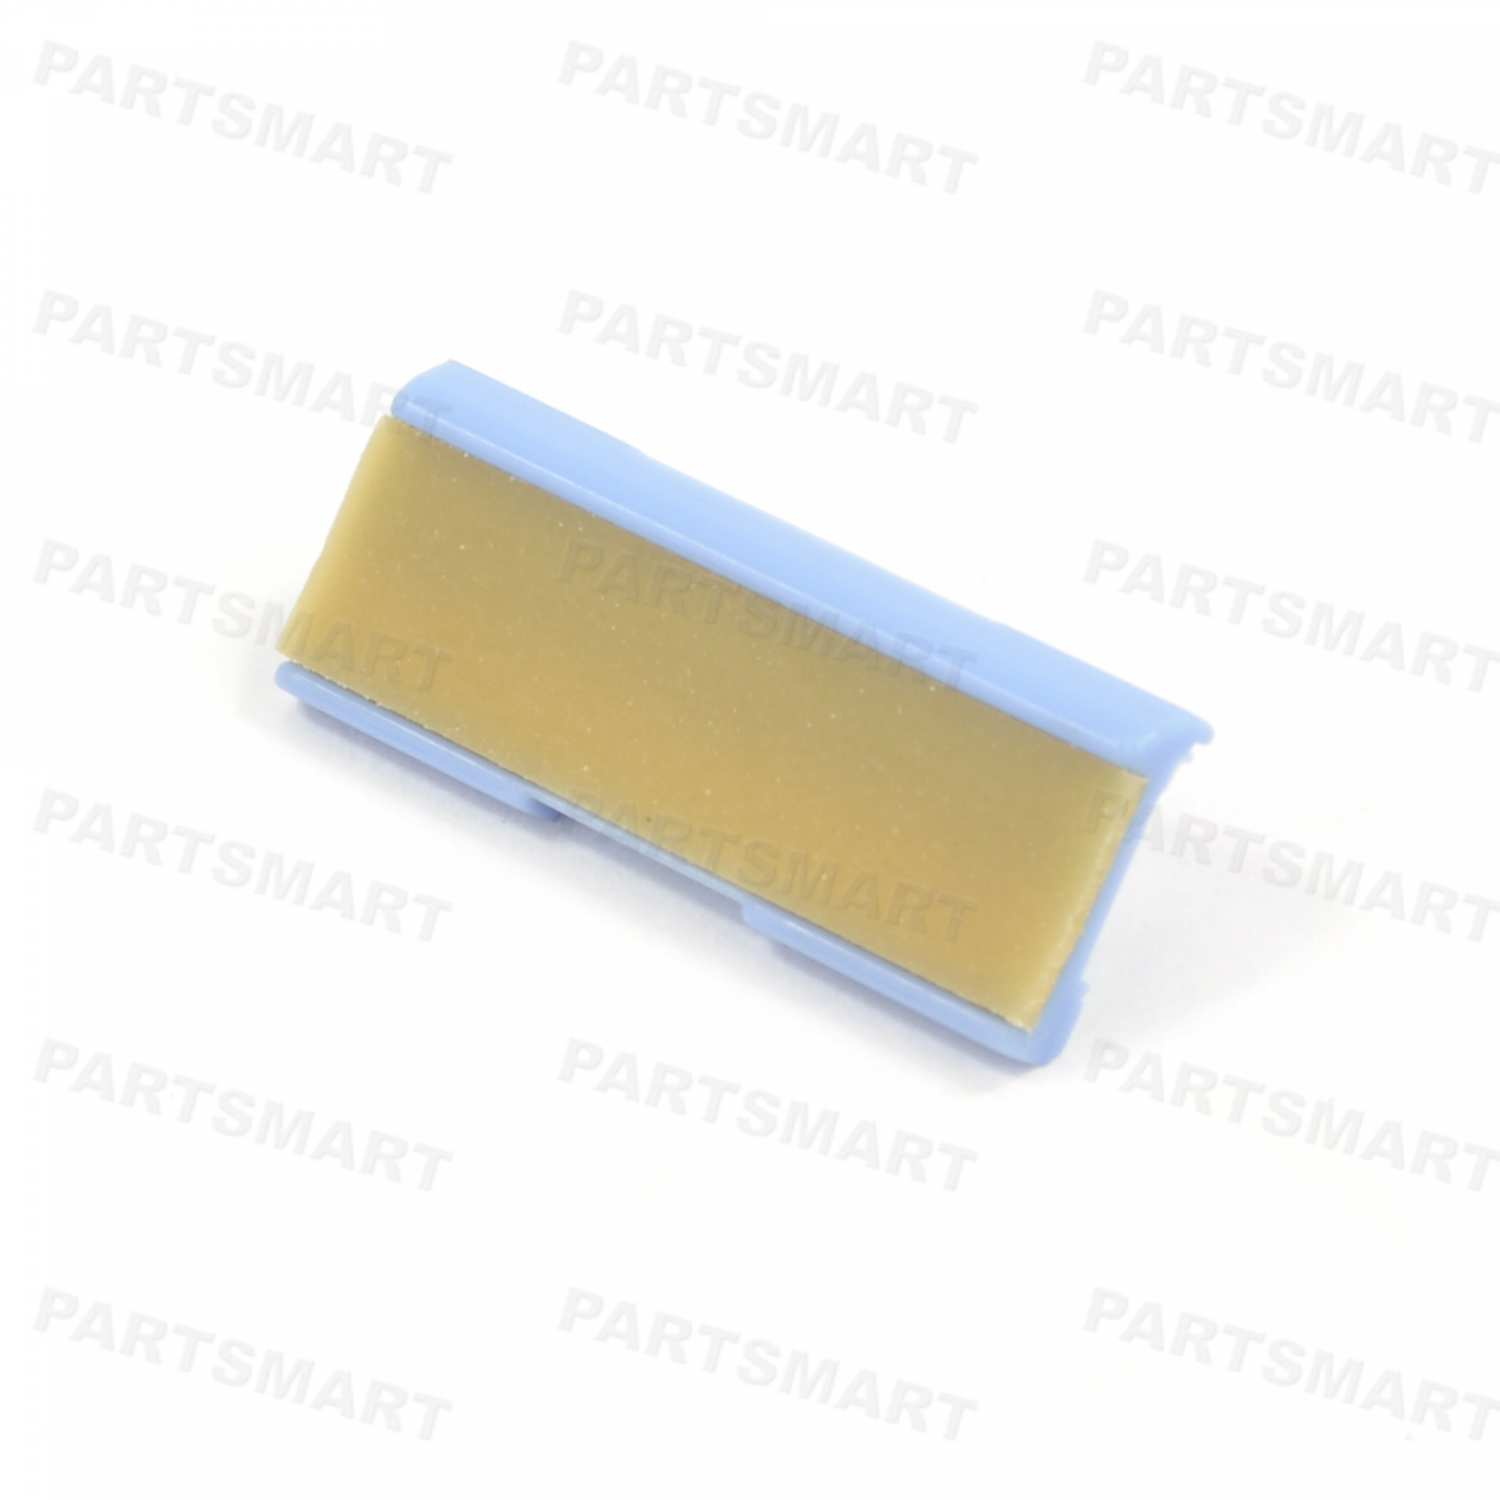 RF0-1014-000 Separation Pad for HP LaserJet 1000, LaserJet 1200